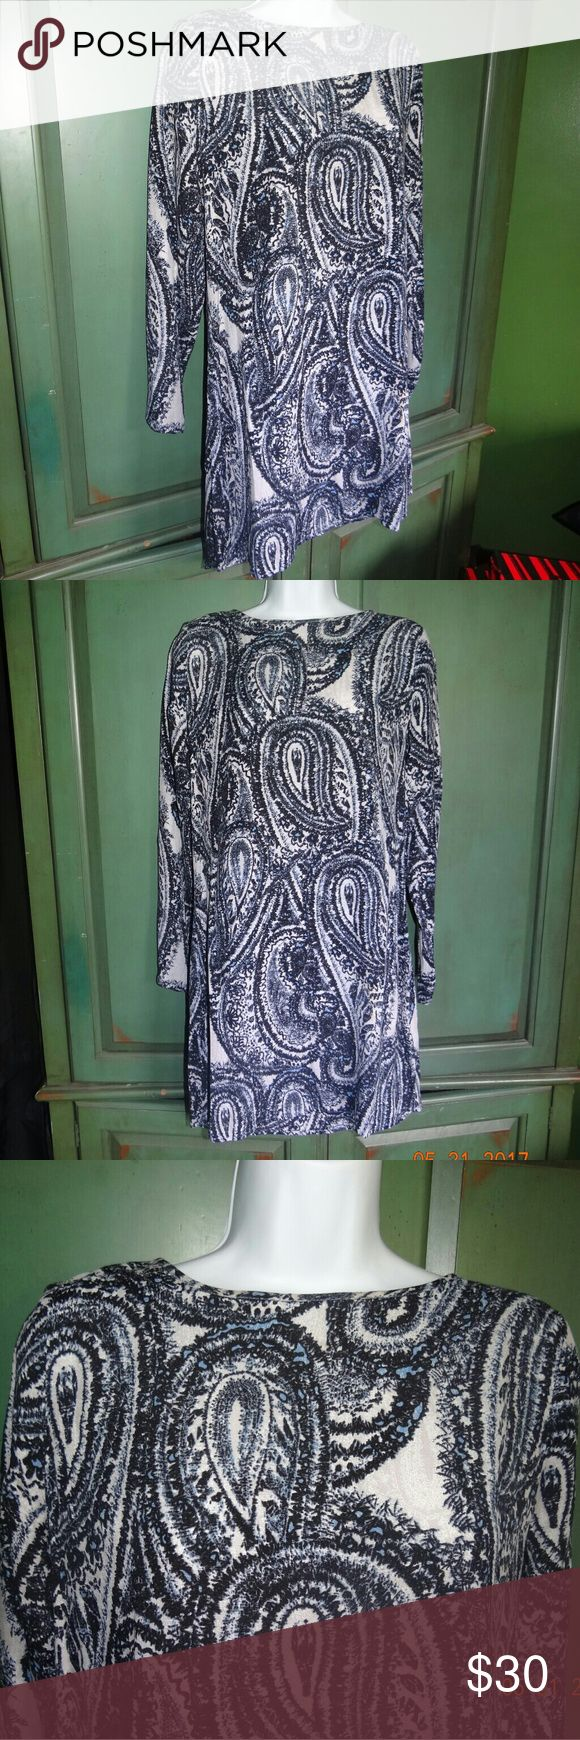 Charlie Jade Blue Paisley Dress This item is used but still in good condition. Charlie Jade from Nordstroms blue paisley dress in woman's size small. It has a keyhole back detail. Very flowy and comfy.  Beautiful pattern. Charlie Jade Dresses